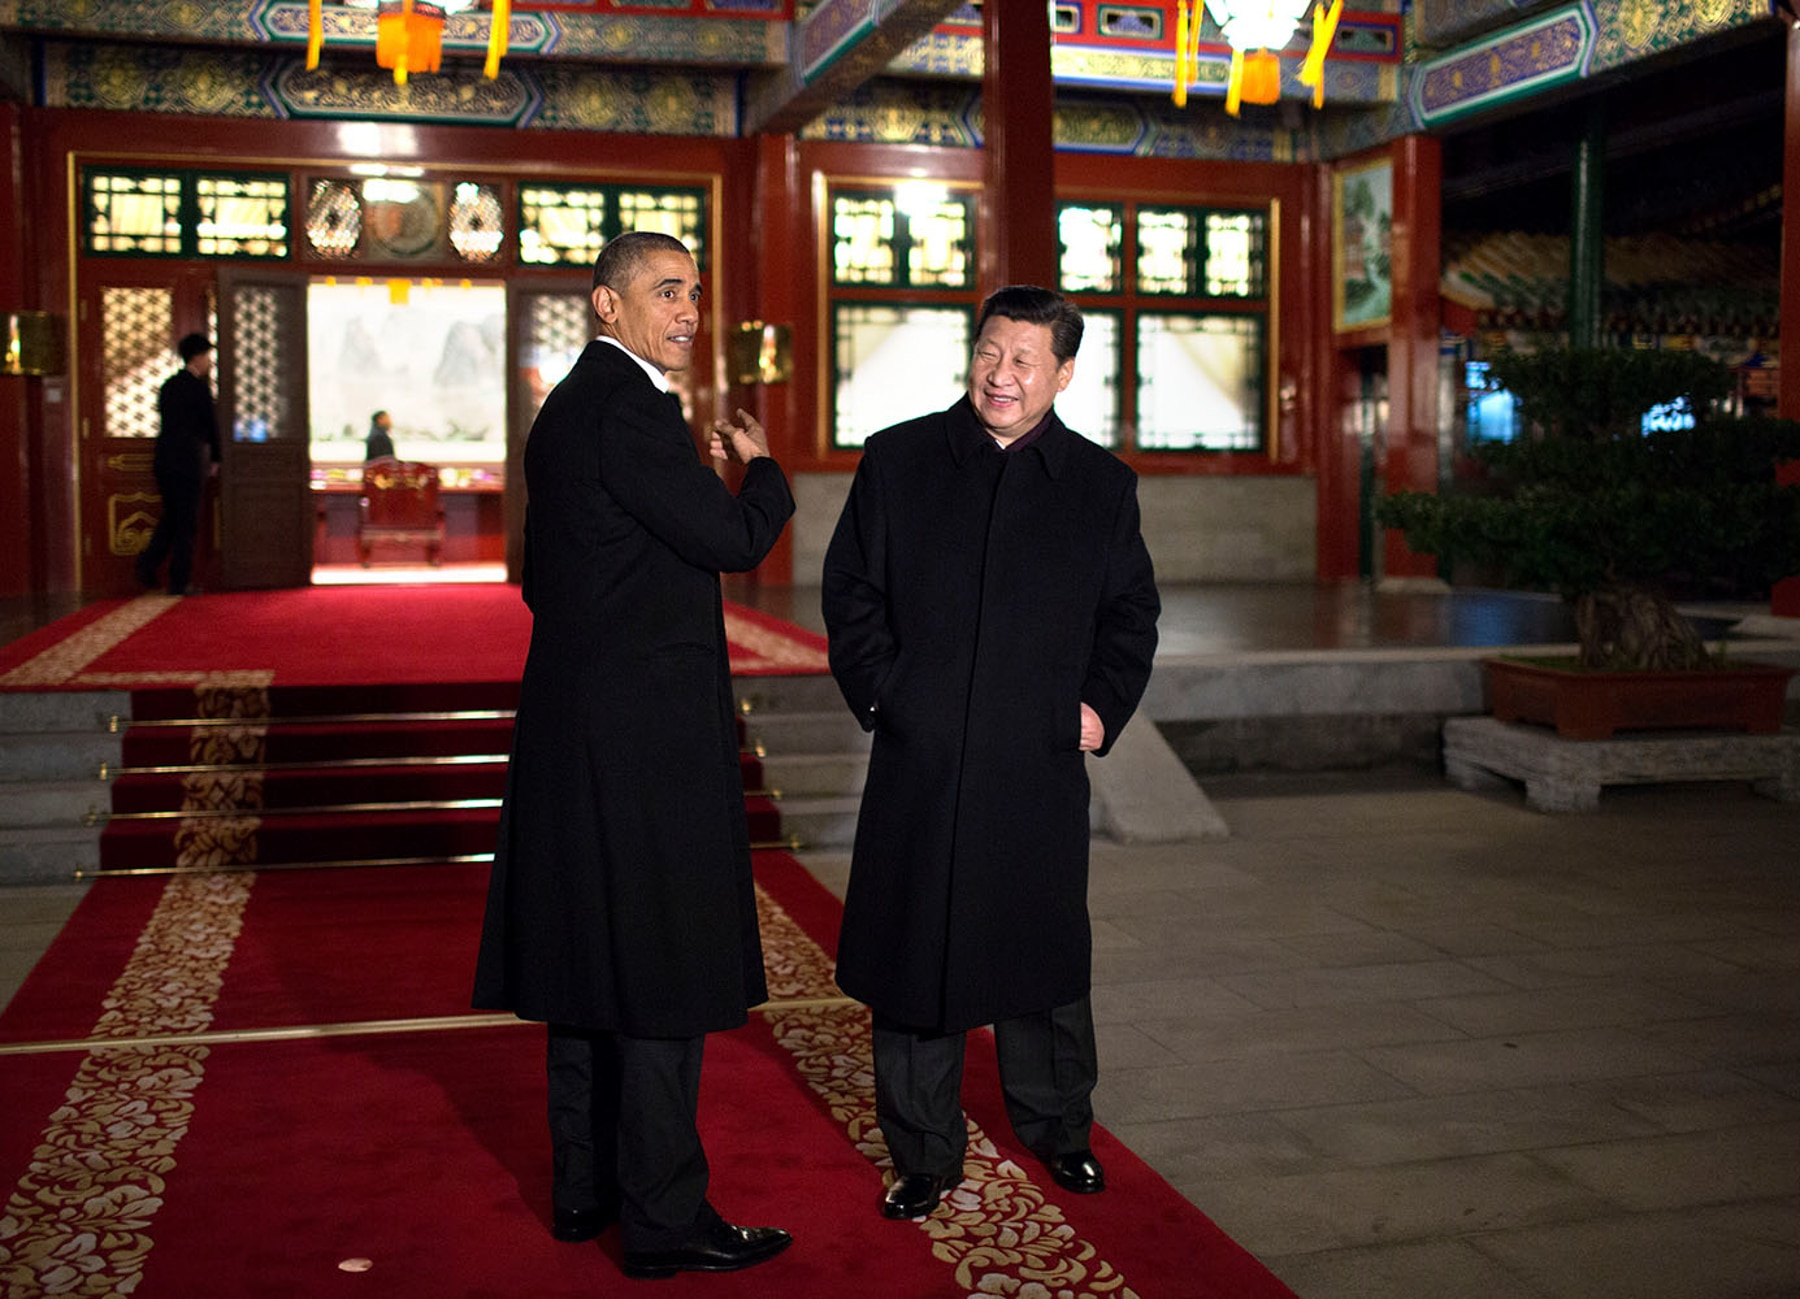 President Obama and Xi Jinping standing in room with red carpet and Chinese decorations (White House/Pete Souza)